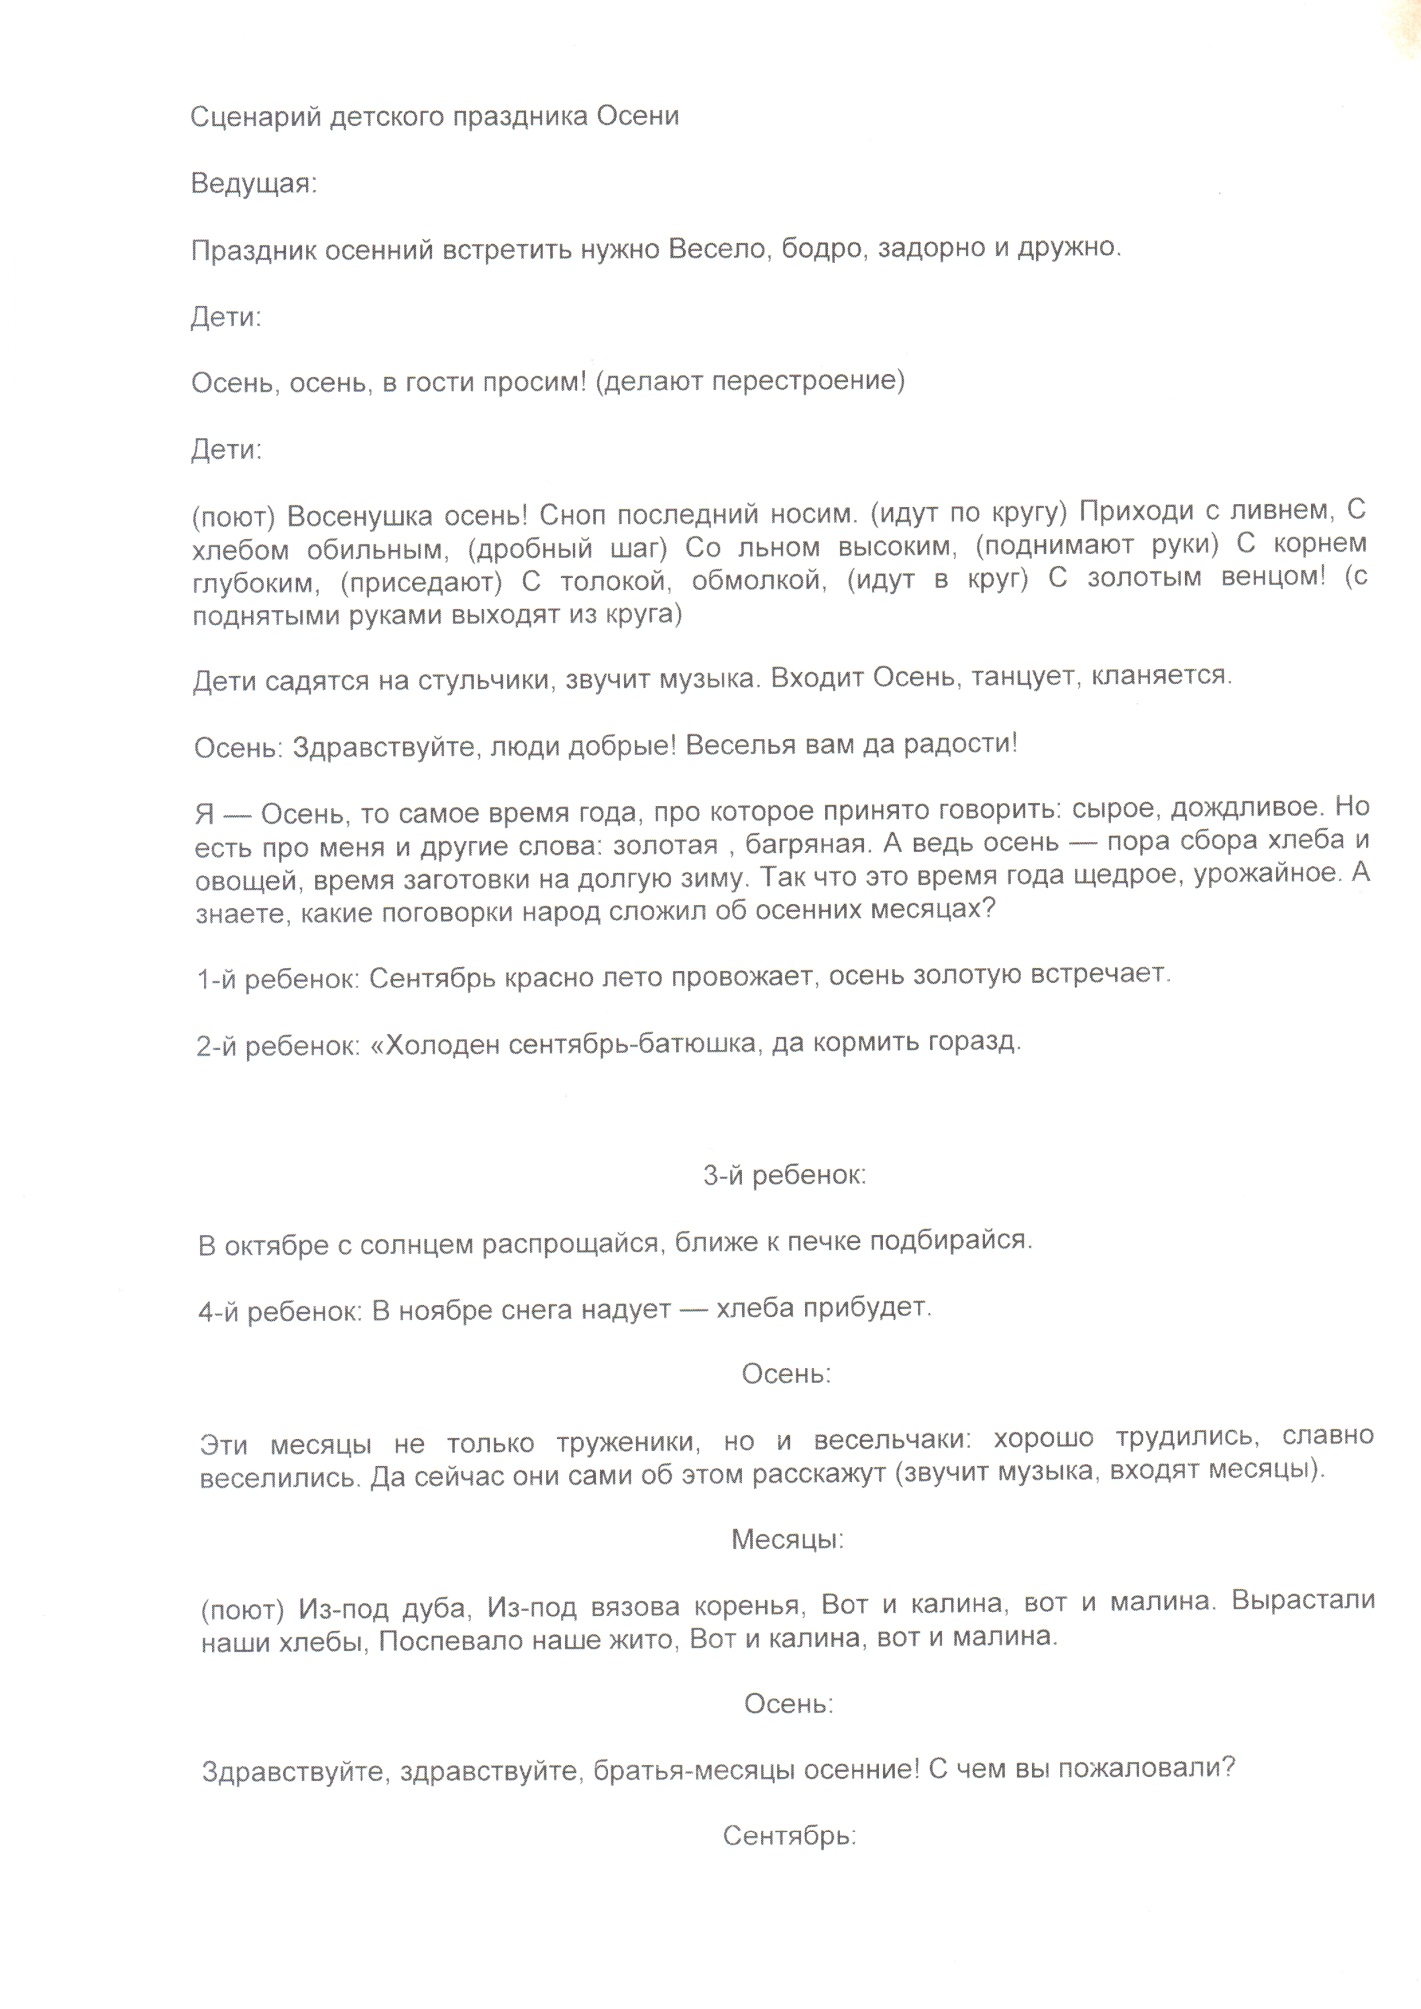 C:\Users\Рондо\Documents\_scaned_docum\09-10-2015\scaned_document-23-09-27.pdf-9.jpeg